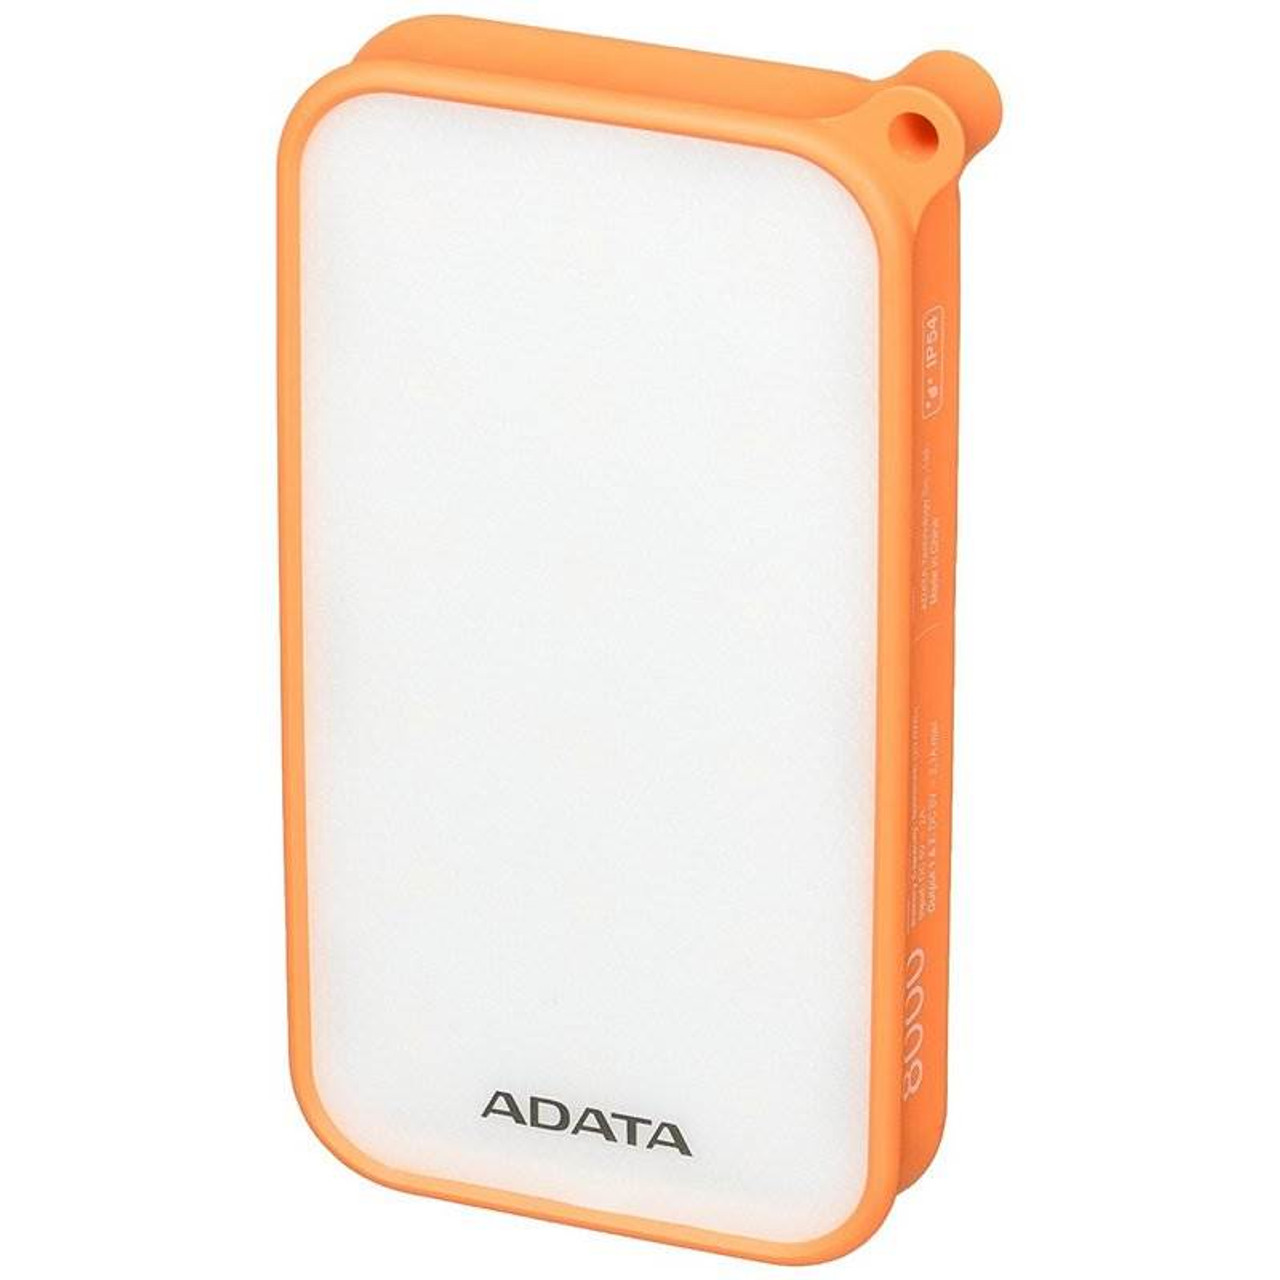 Image for Adata D8000L 8000mAh Power Bank - Orange CX Computer Superstore